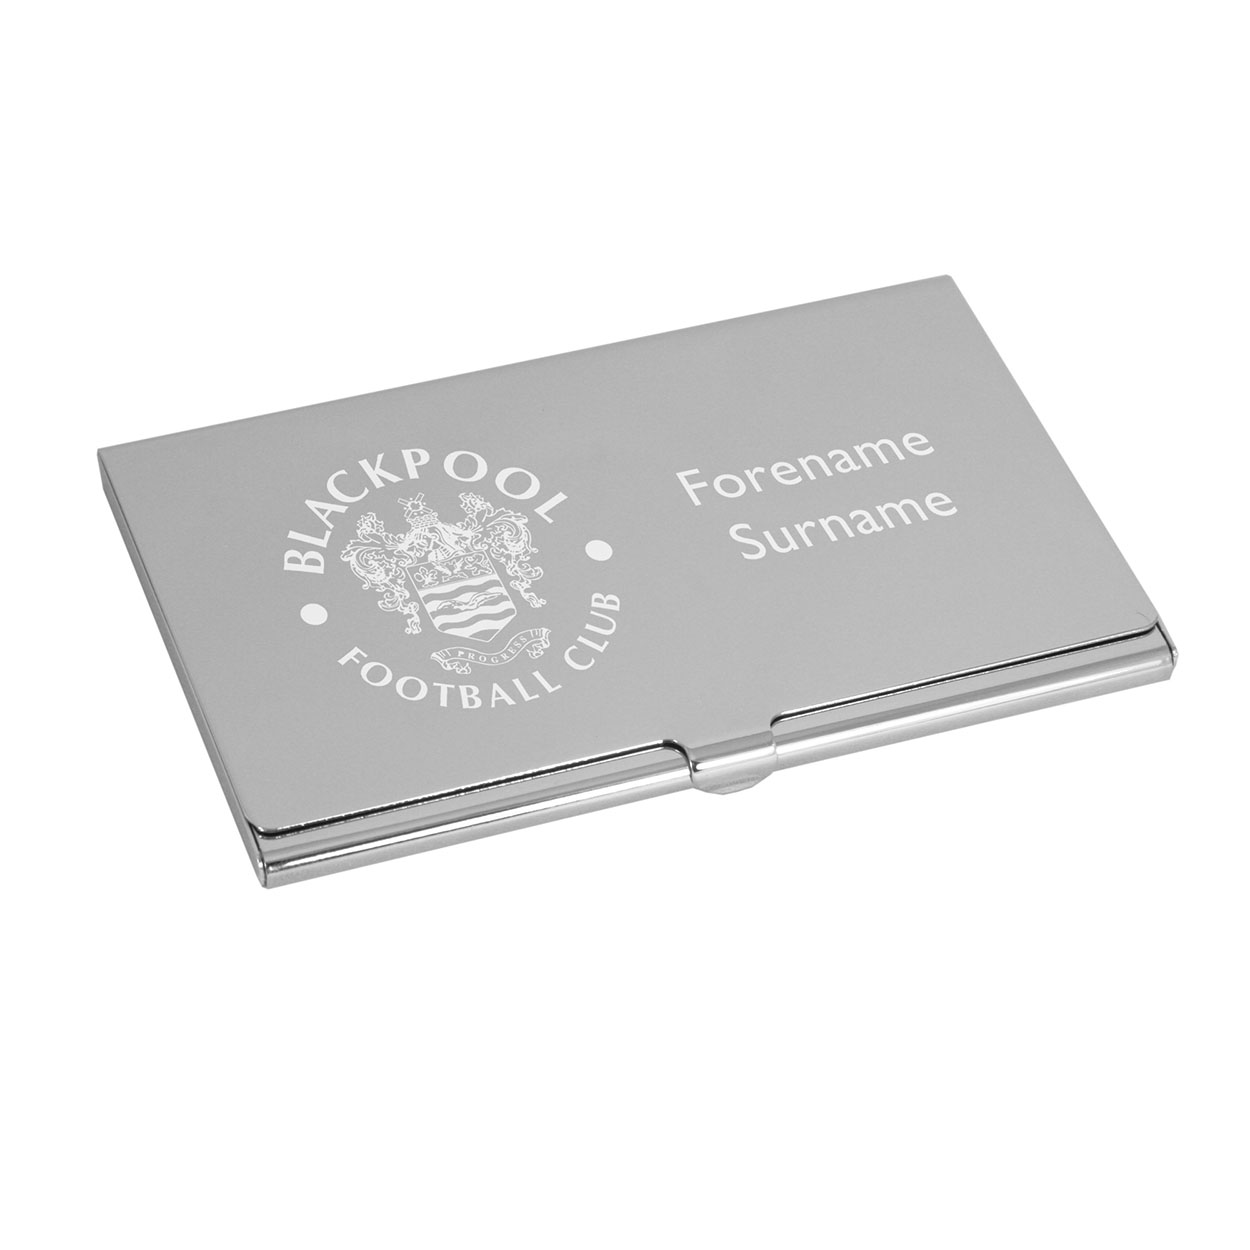 Personalised blackpool football club business card holder blabc personalised blackpool football club business card holder blabc uksoccershop colourmoves